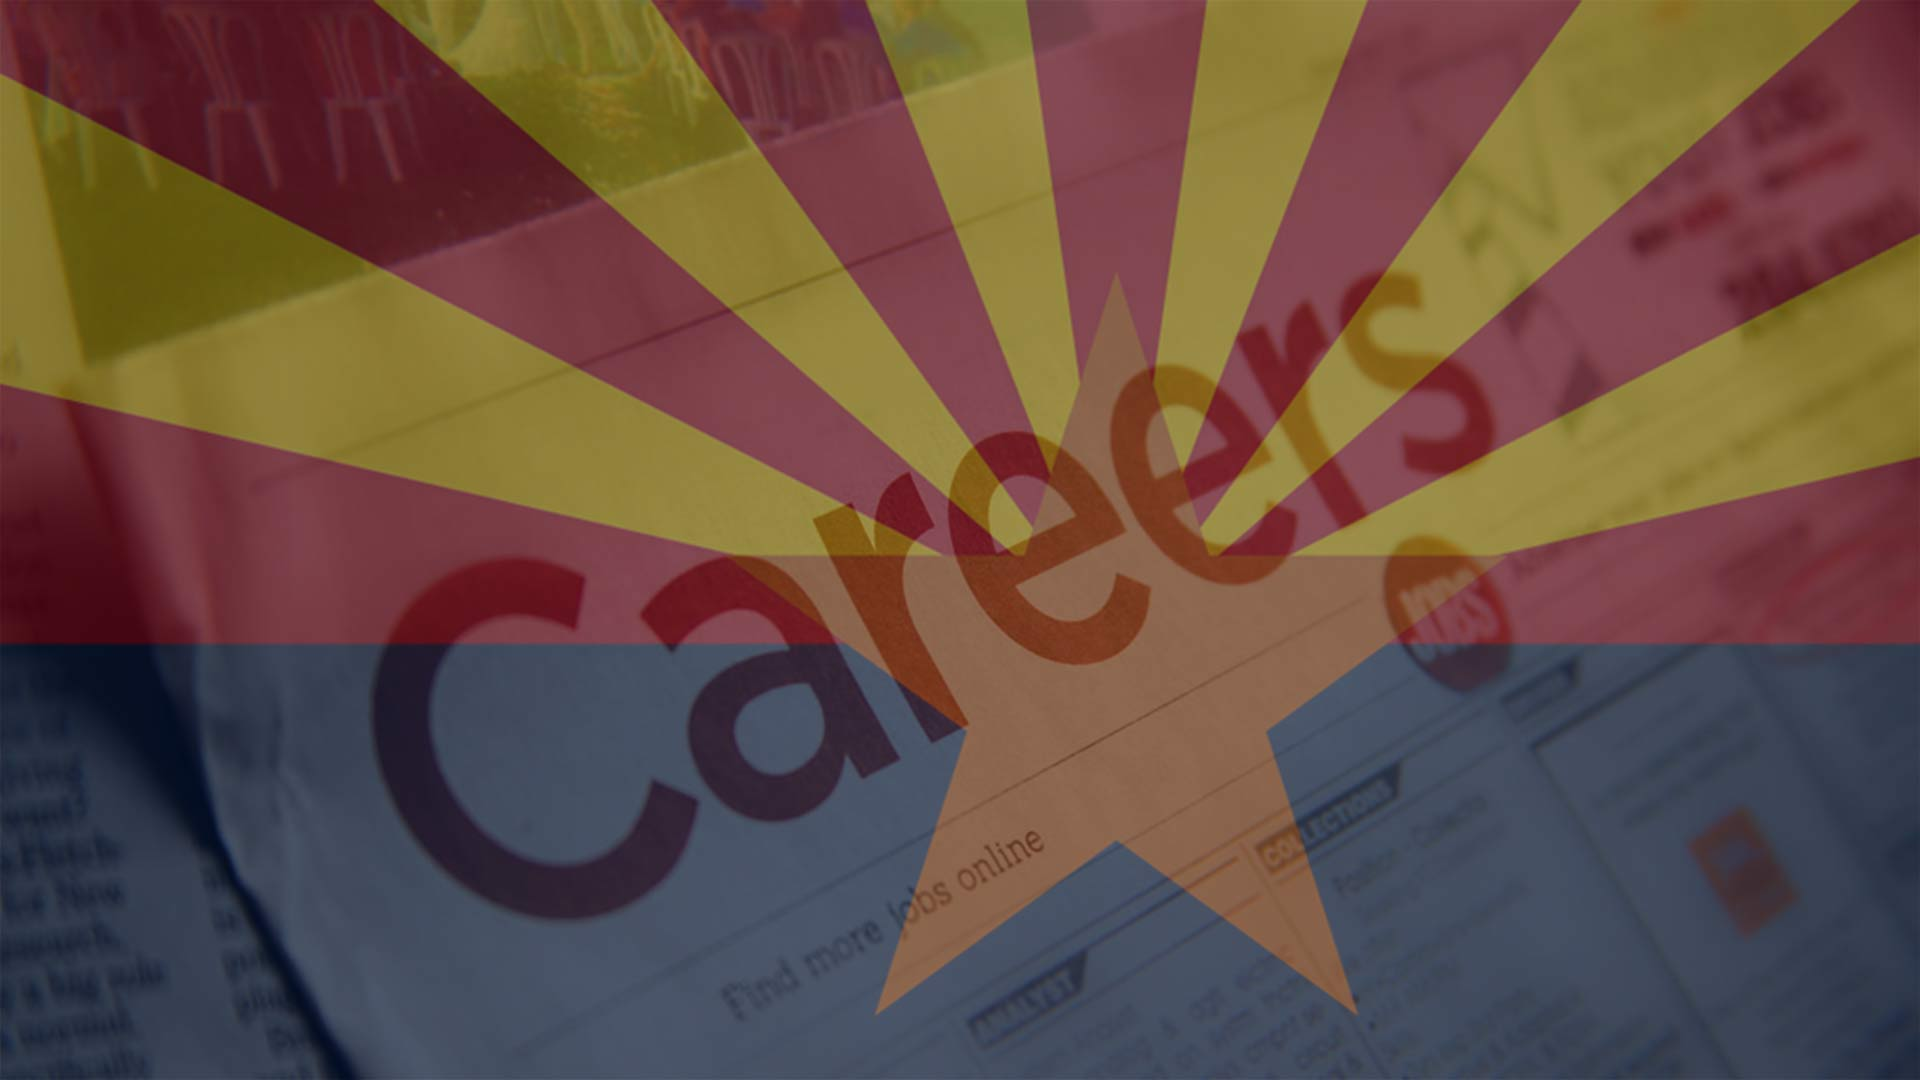 Unemployment in Arizona is generally higher than the national average.